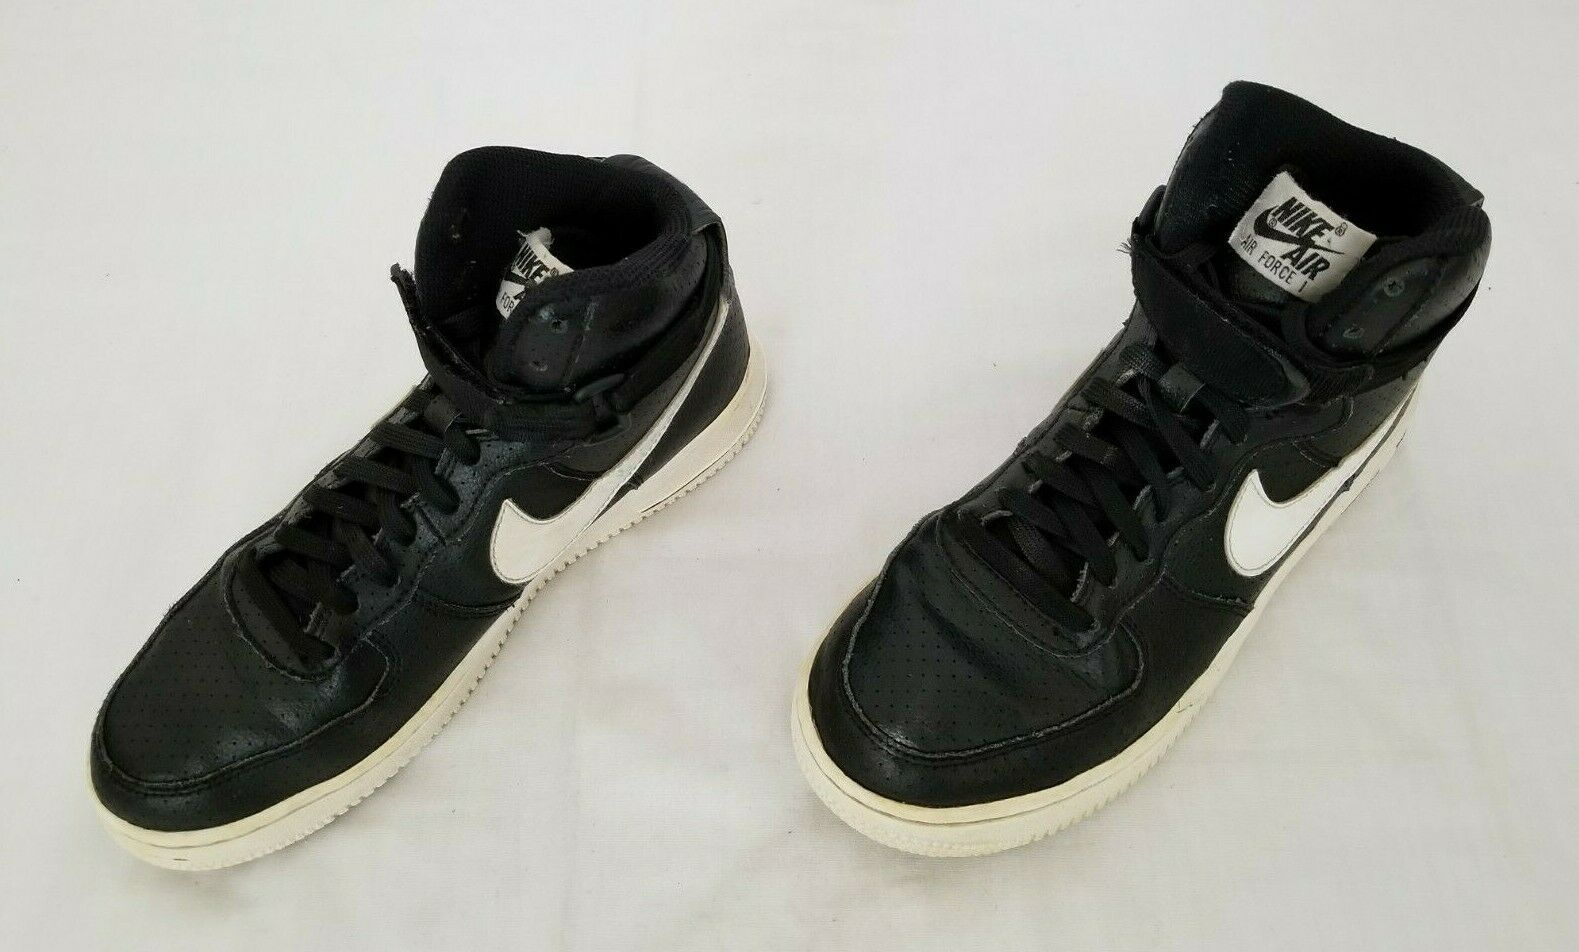 Youth Size 5 5y Black White Nike Air Force 1 High Top Leather